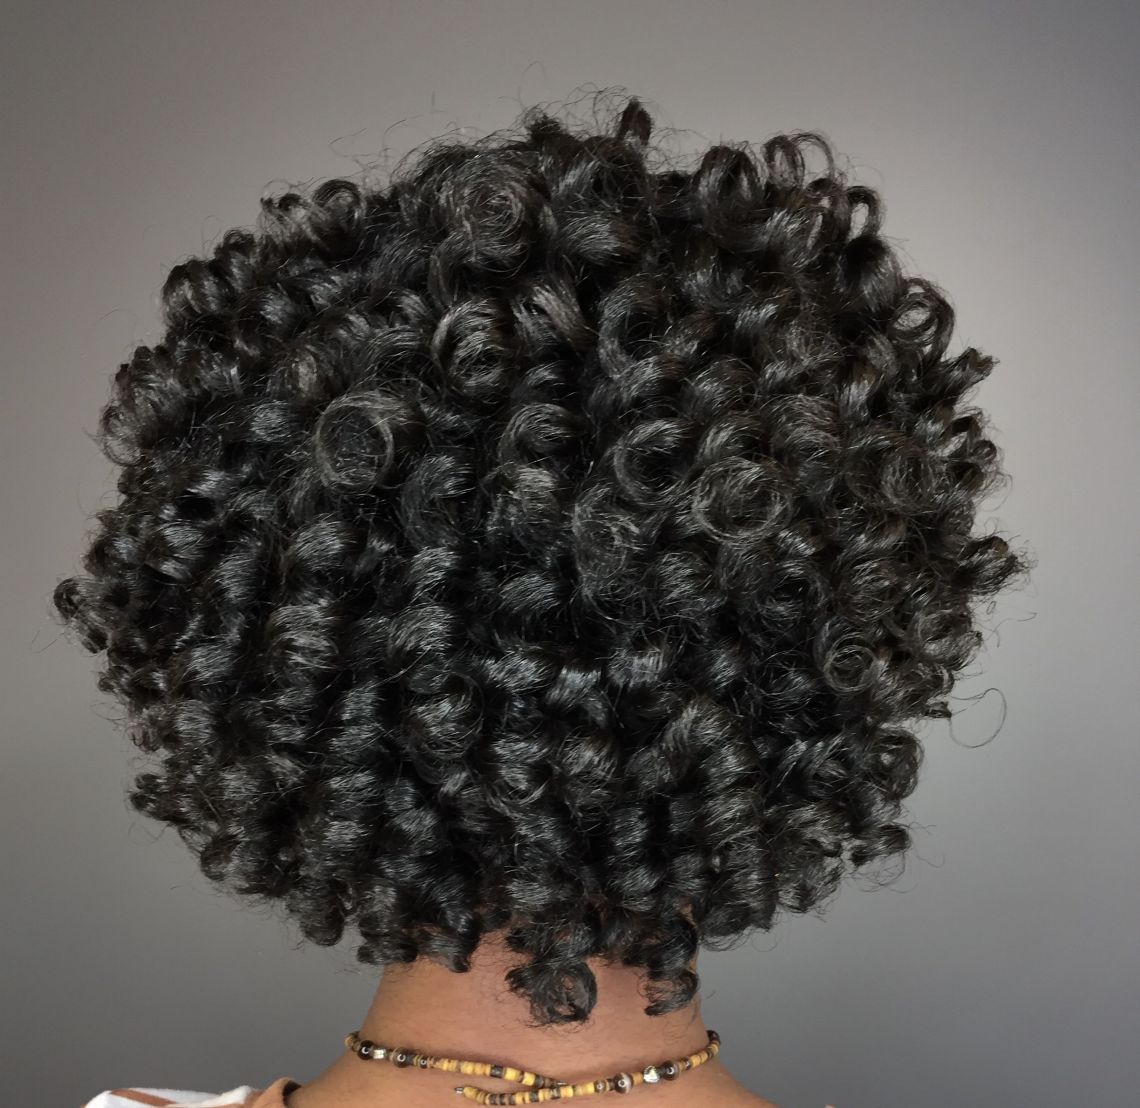 perm rods for natural hair